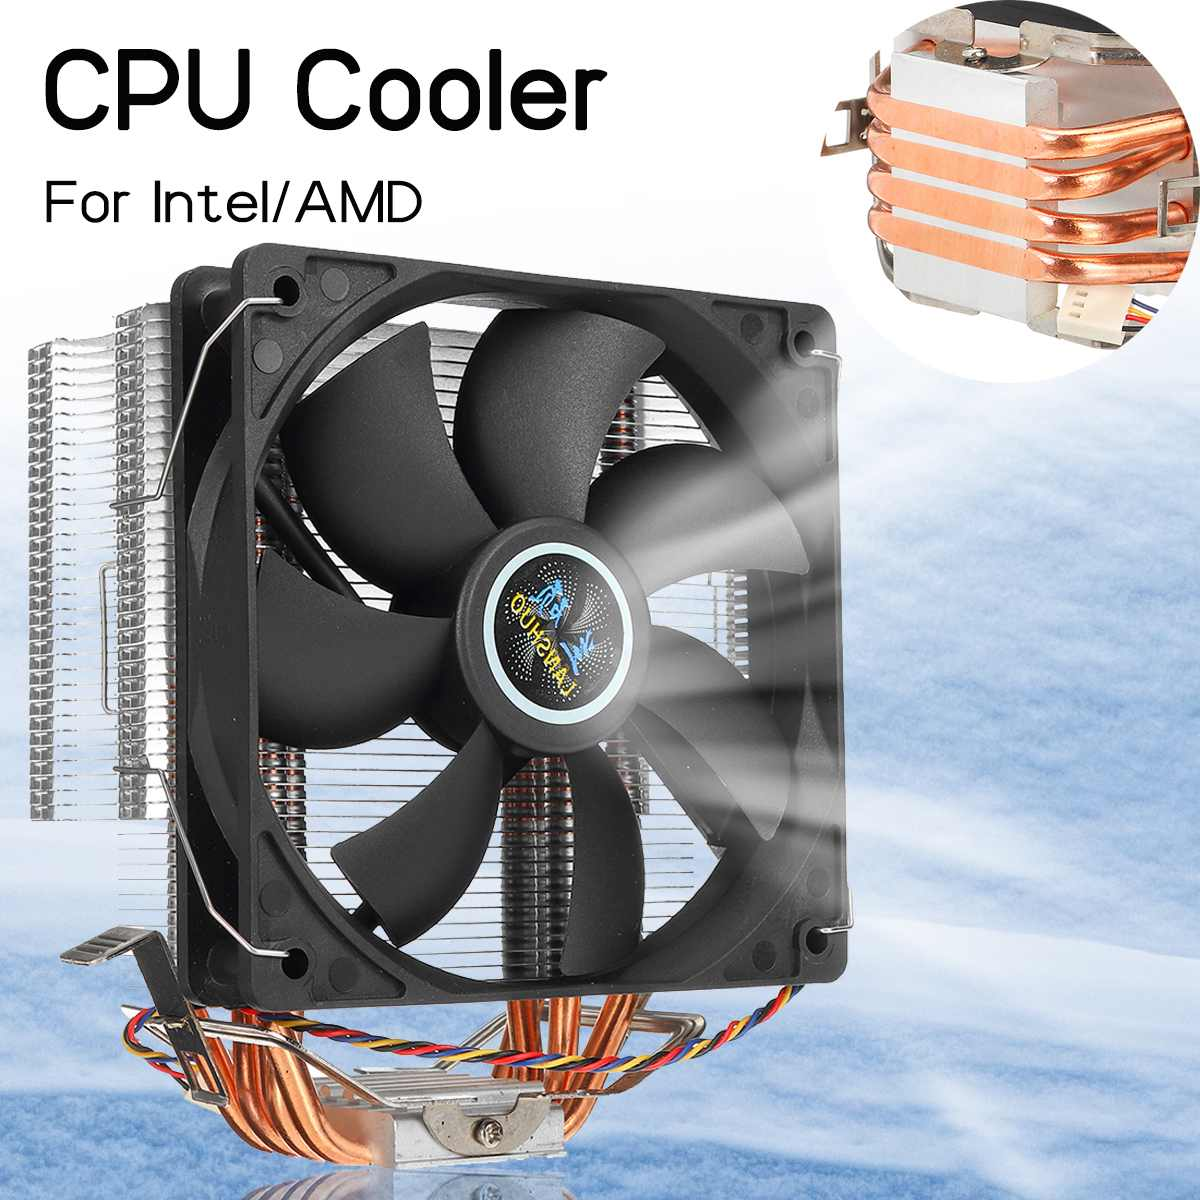 12cm 4 Heat Pipes CPU Cooler Aluminum 3Pin Cooling Fan Cooler Heatsink Radiator for LGA 1150/1151/1155/1156/1366/775 AMD AM3+